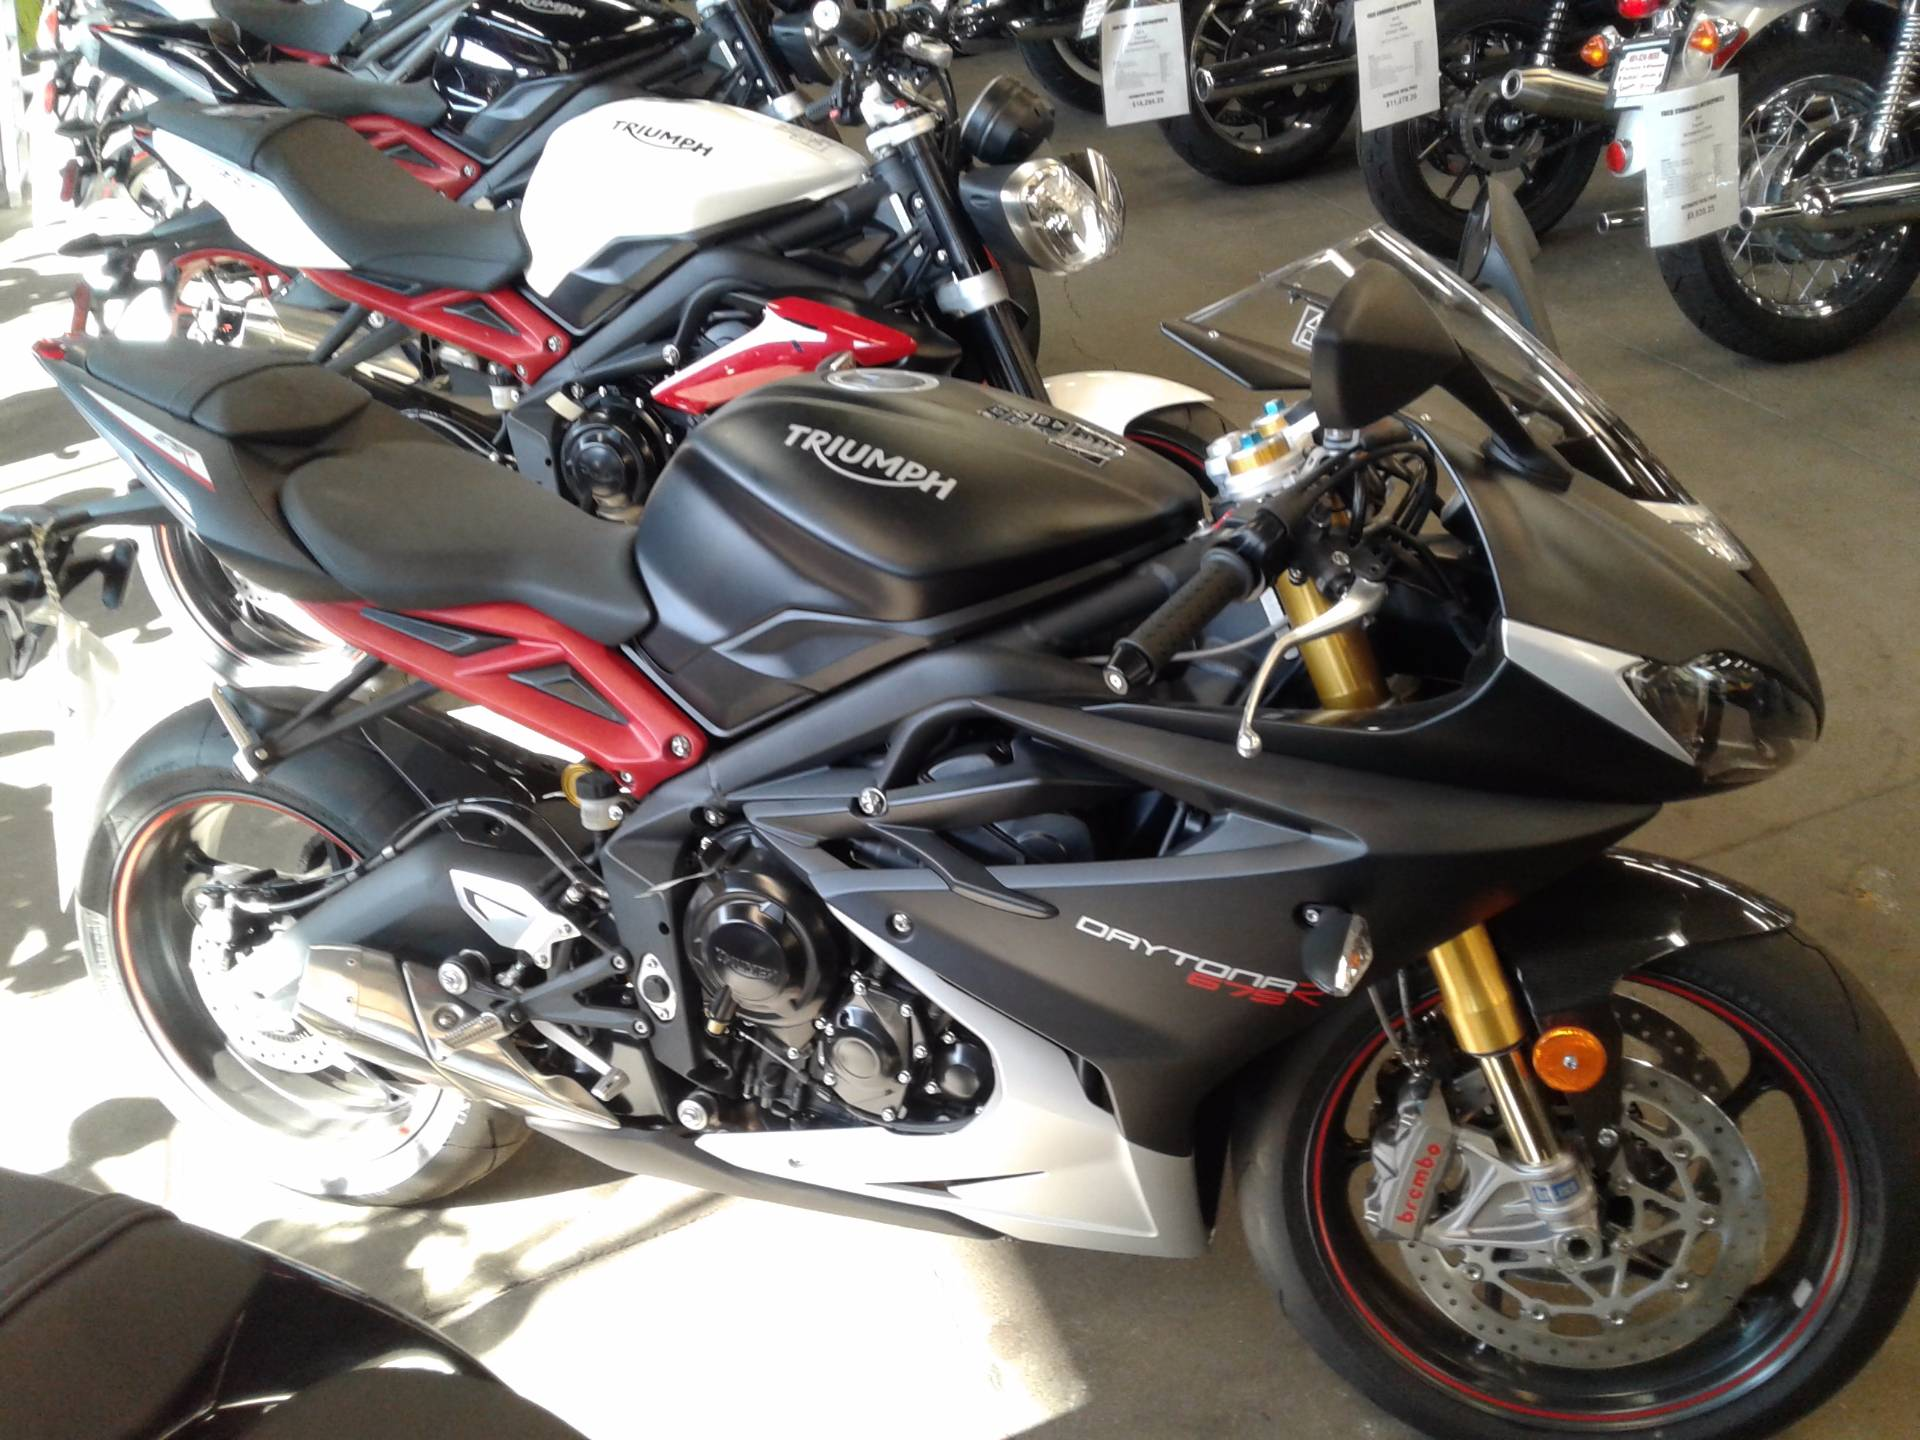 2016 Triumph Daytona 675 R Abs In Bakersfield California Photo 1